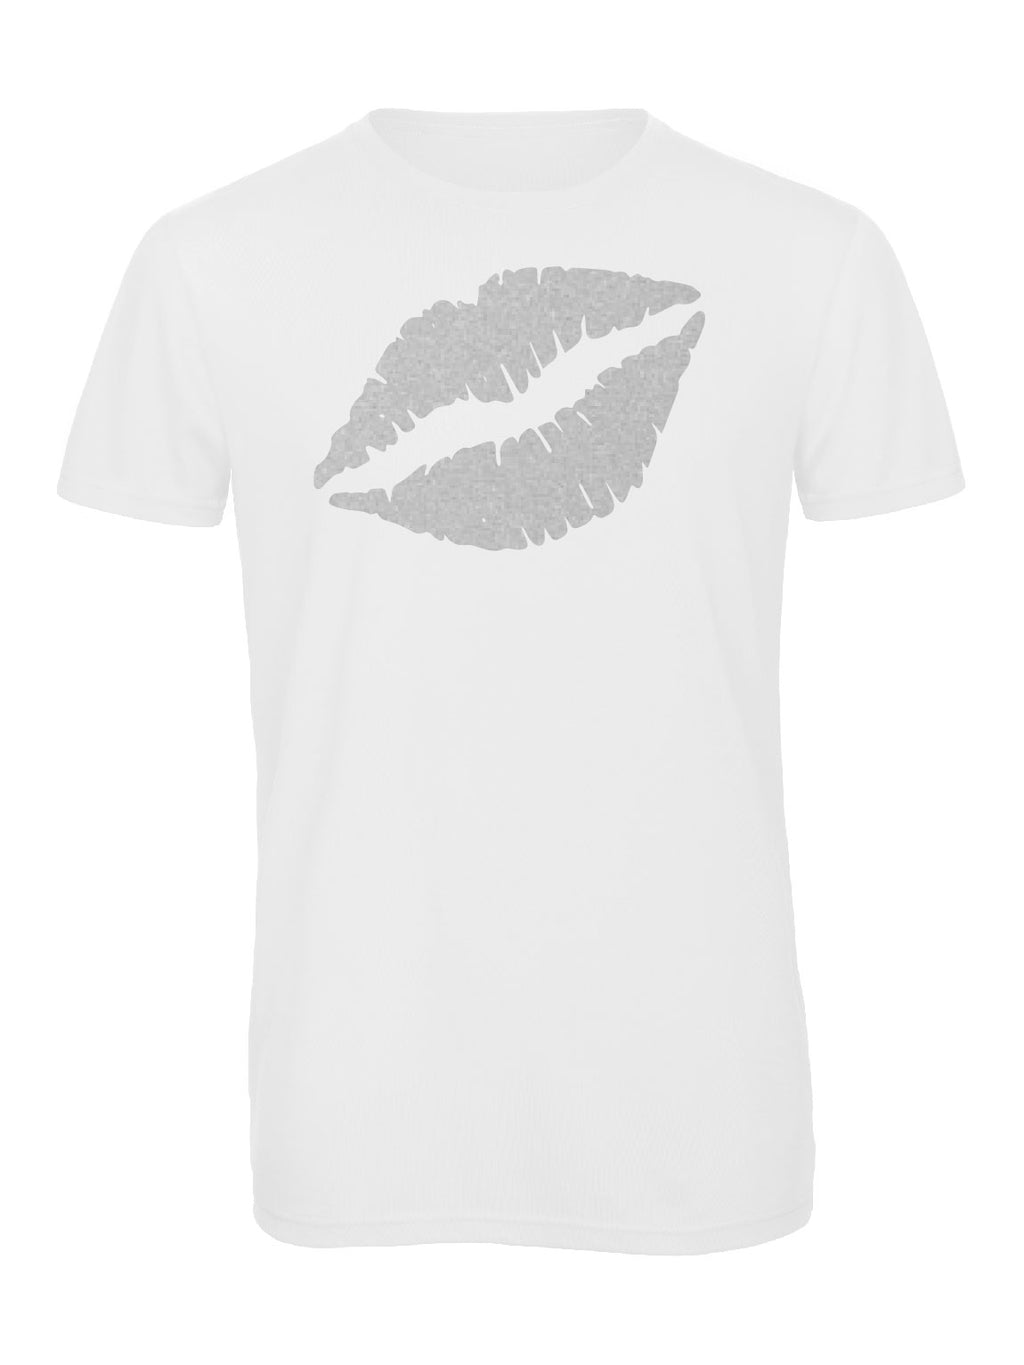 Gem Lips Crew Neck Silver - Available in Black and White Tees